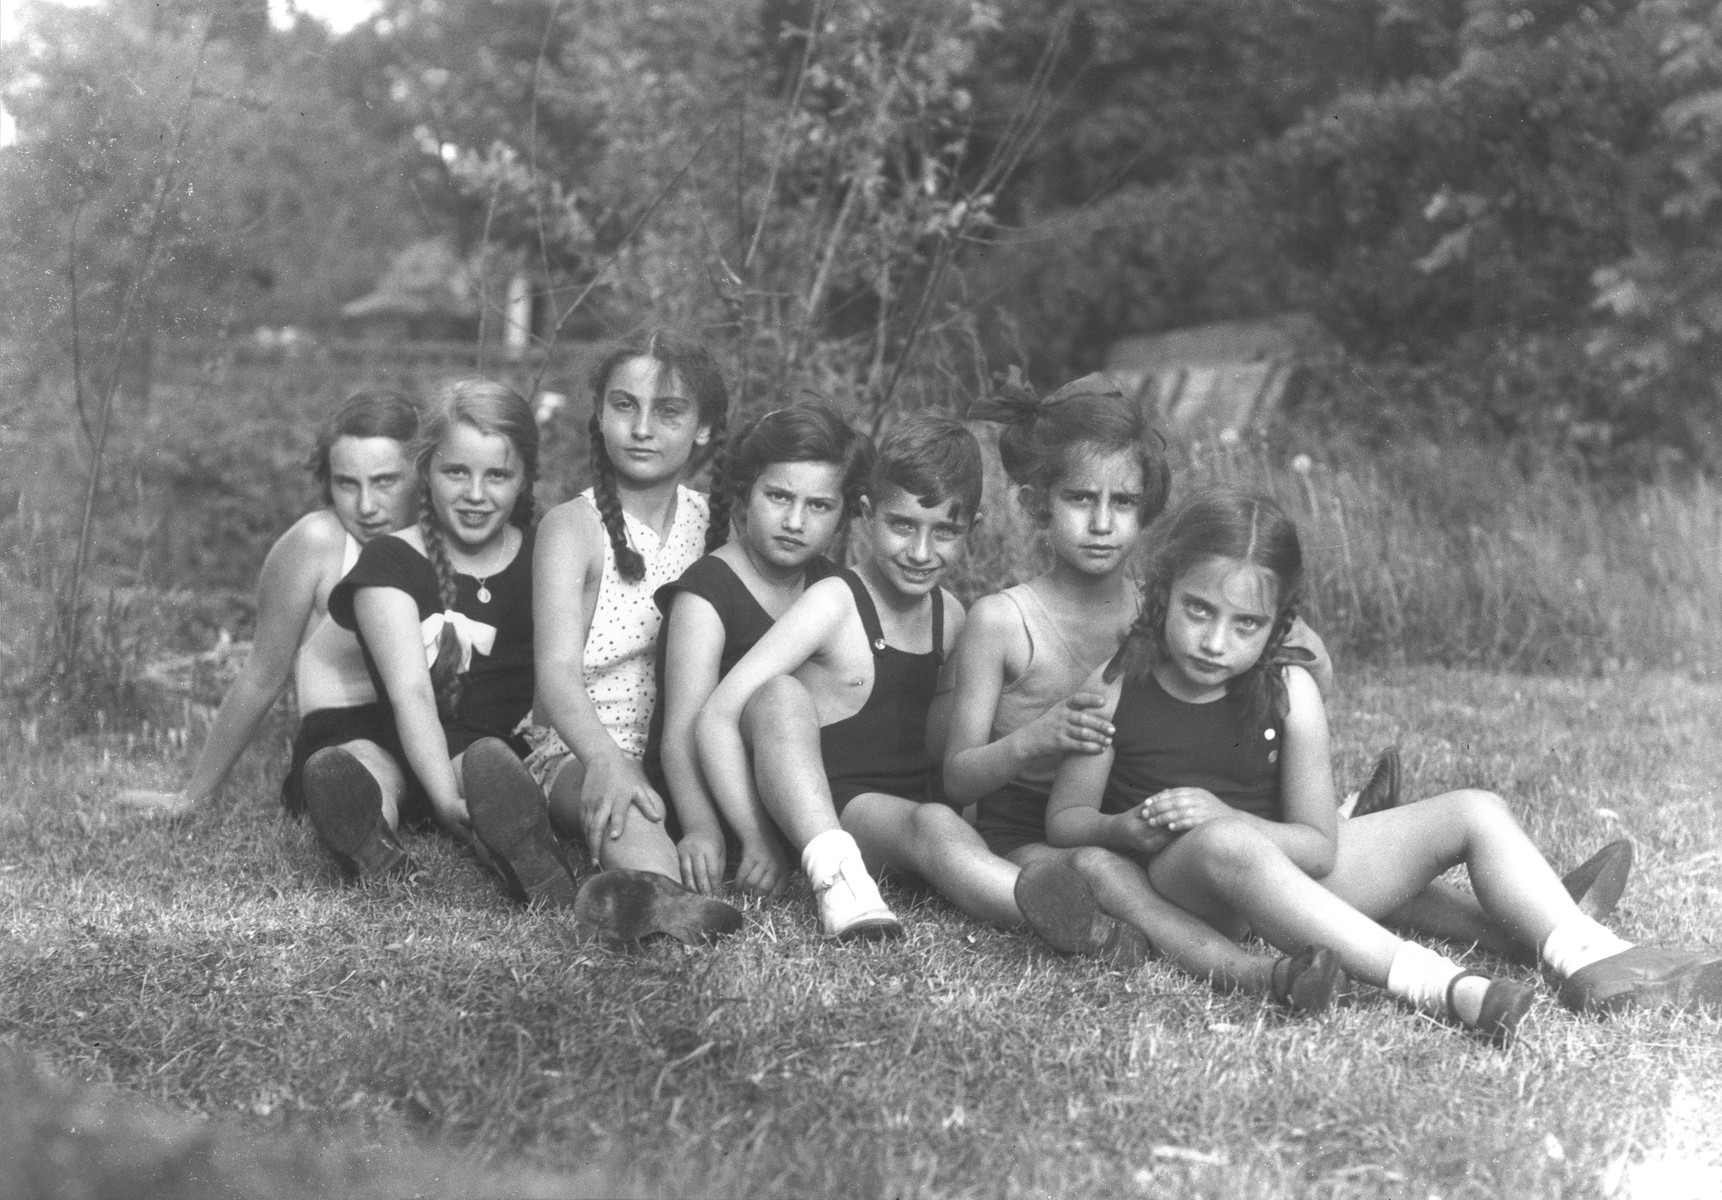 The children of Georg and Gertrude Anker sit in a row on the grass with their friends and cousins.  Pictured are Eva, Dodi and Hilde Anker, their cousins Heinz and Else Karplus, and two friends.